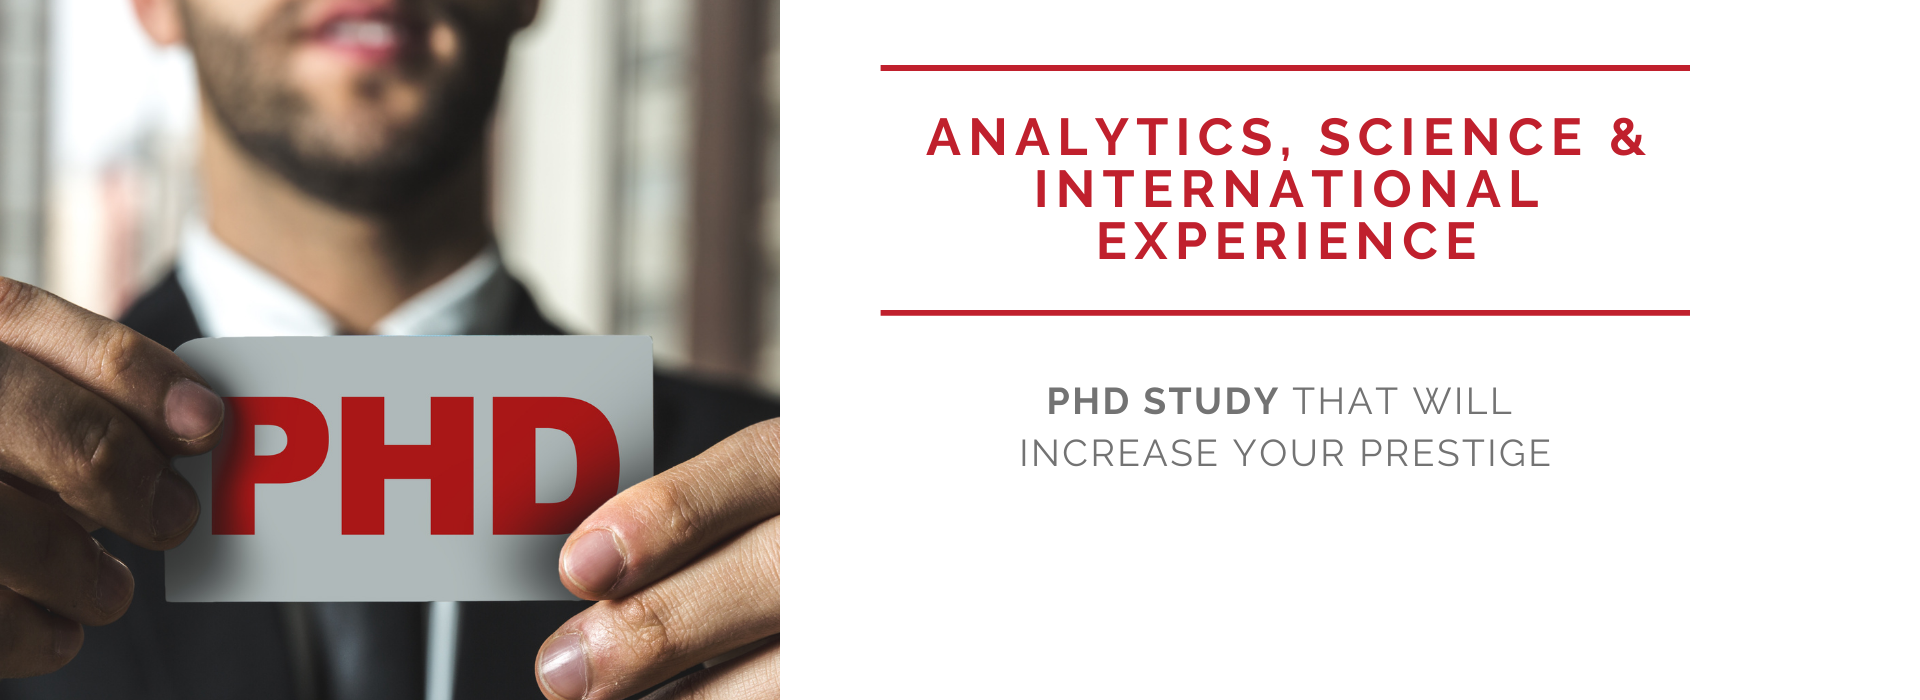 Analytics, International Experience & Science